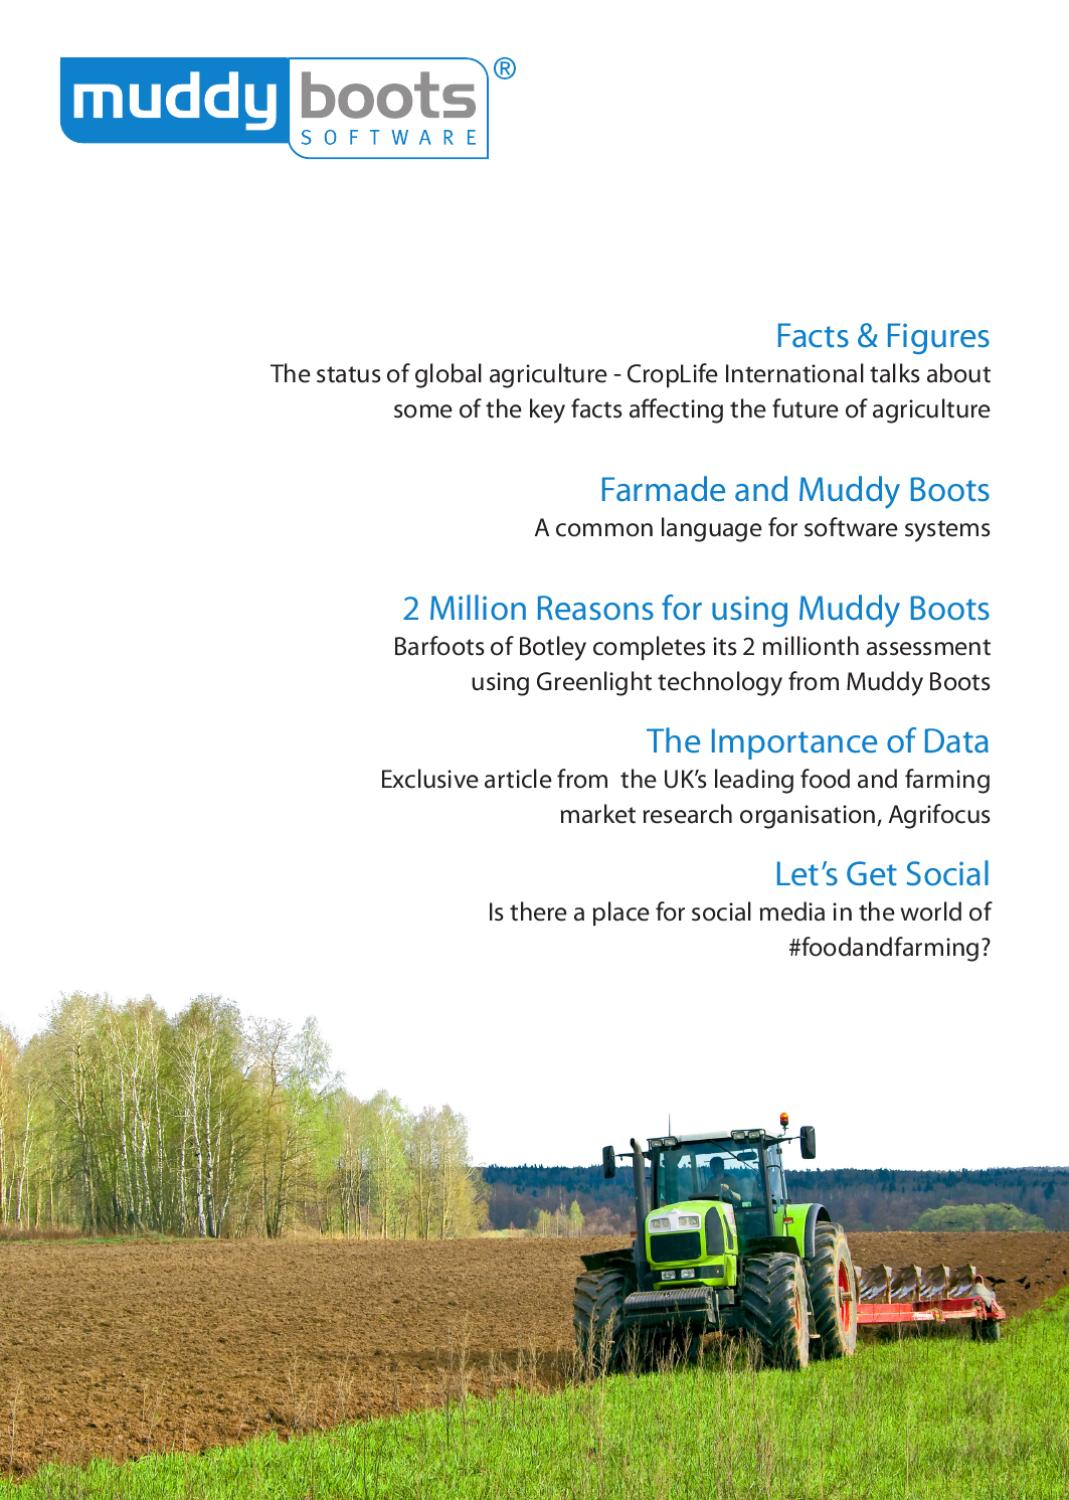 Muddy Boots Agricultural Magazine by Muddy Boots Software